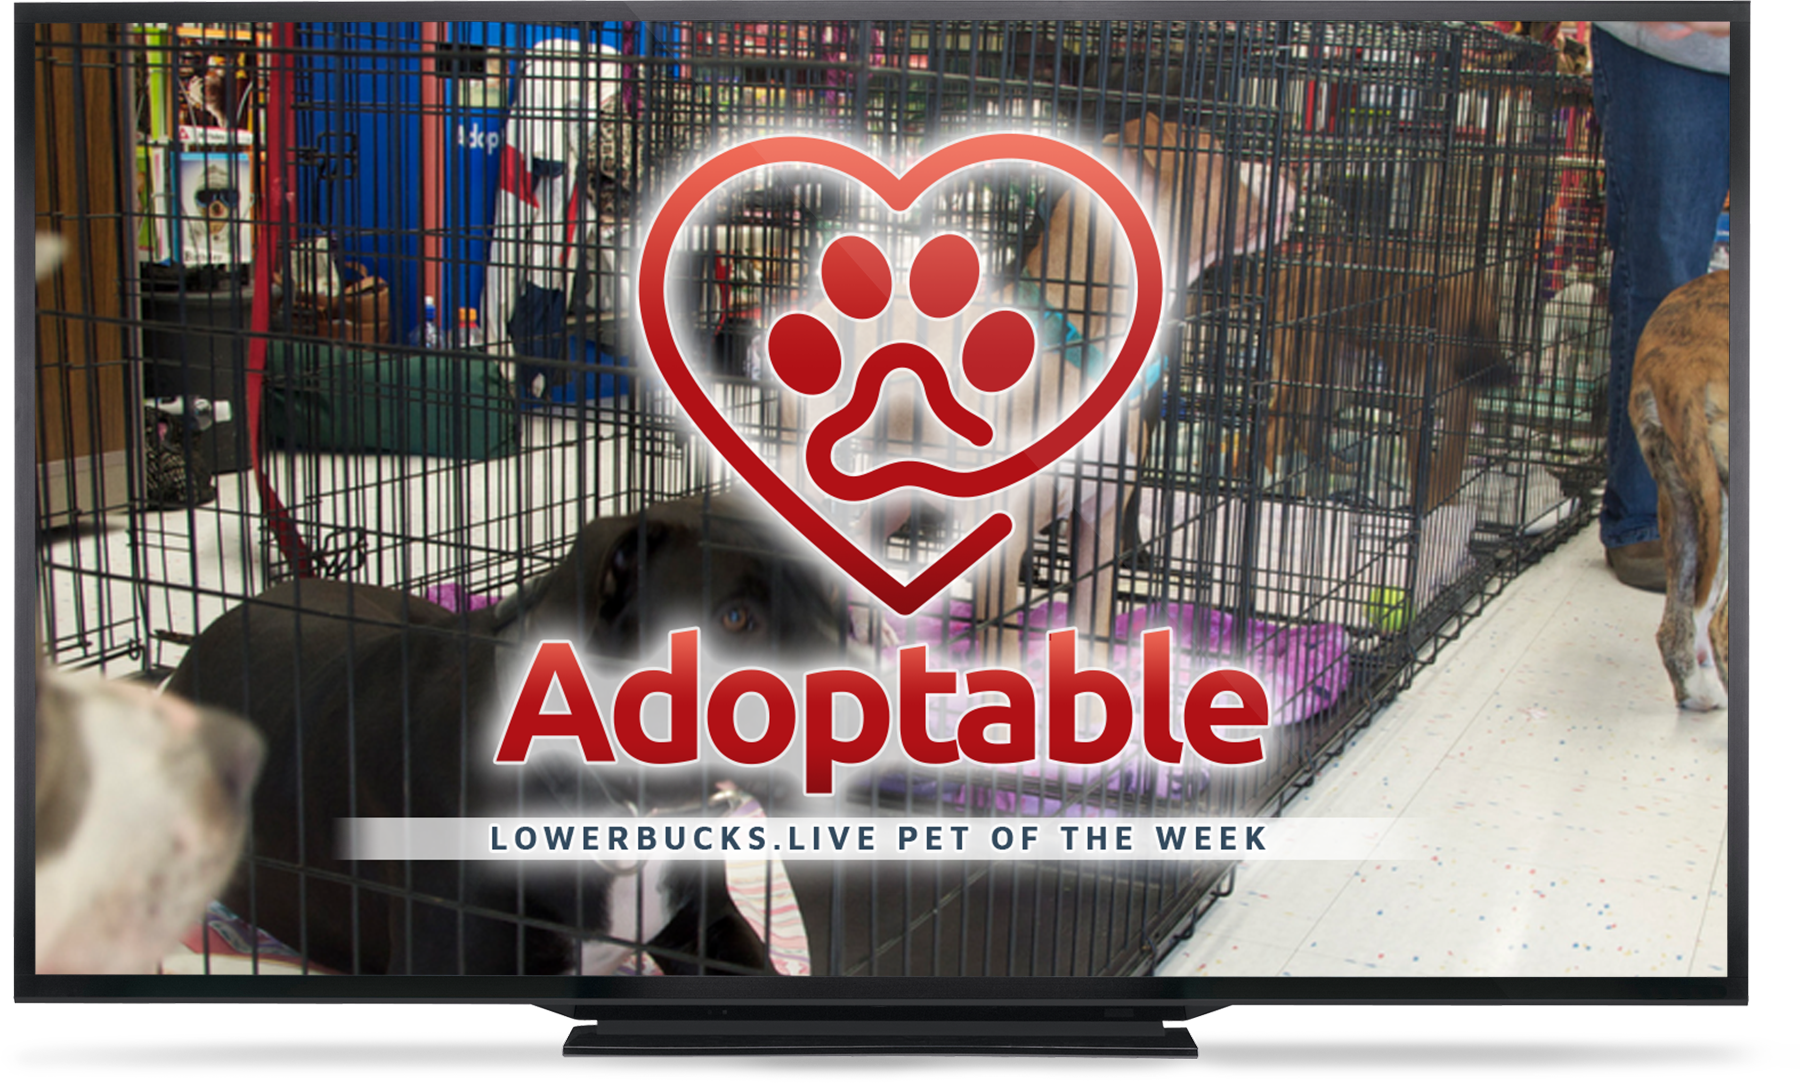 Watch the Adoptable Pet of the Week